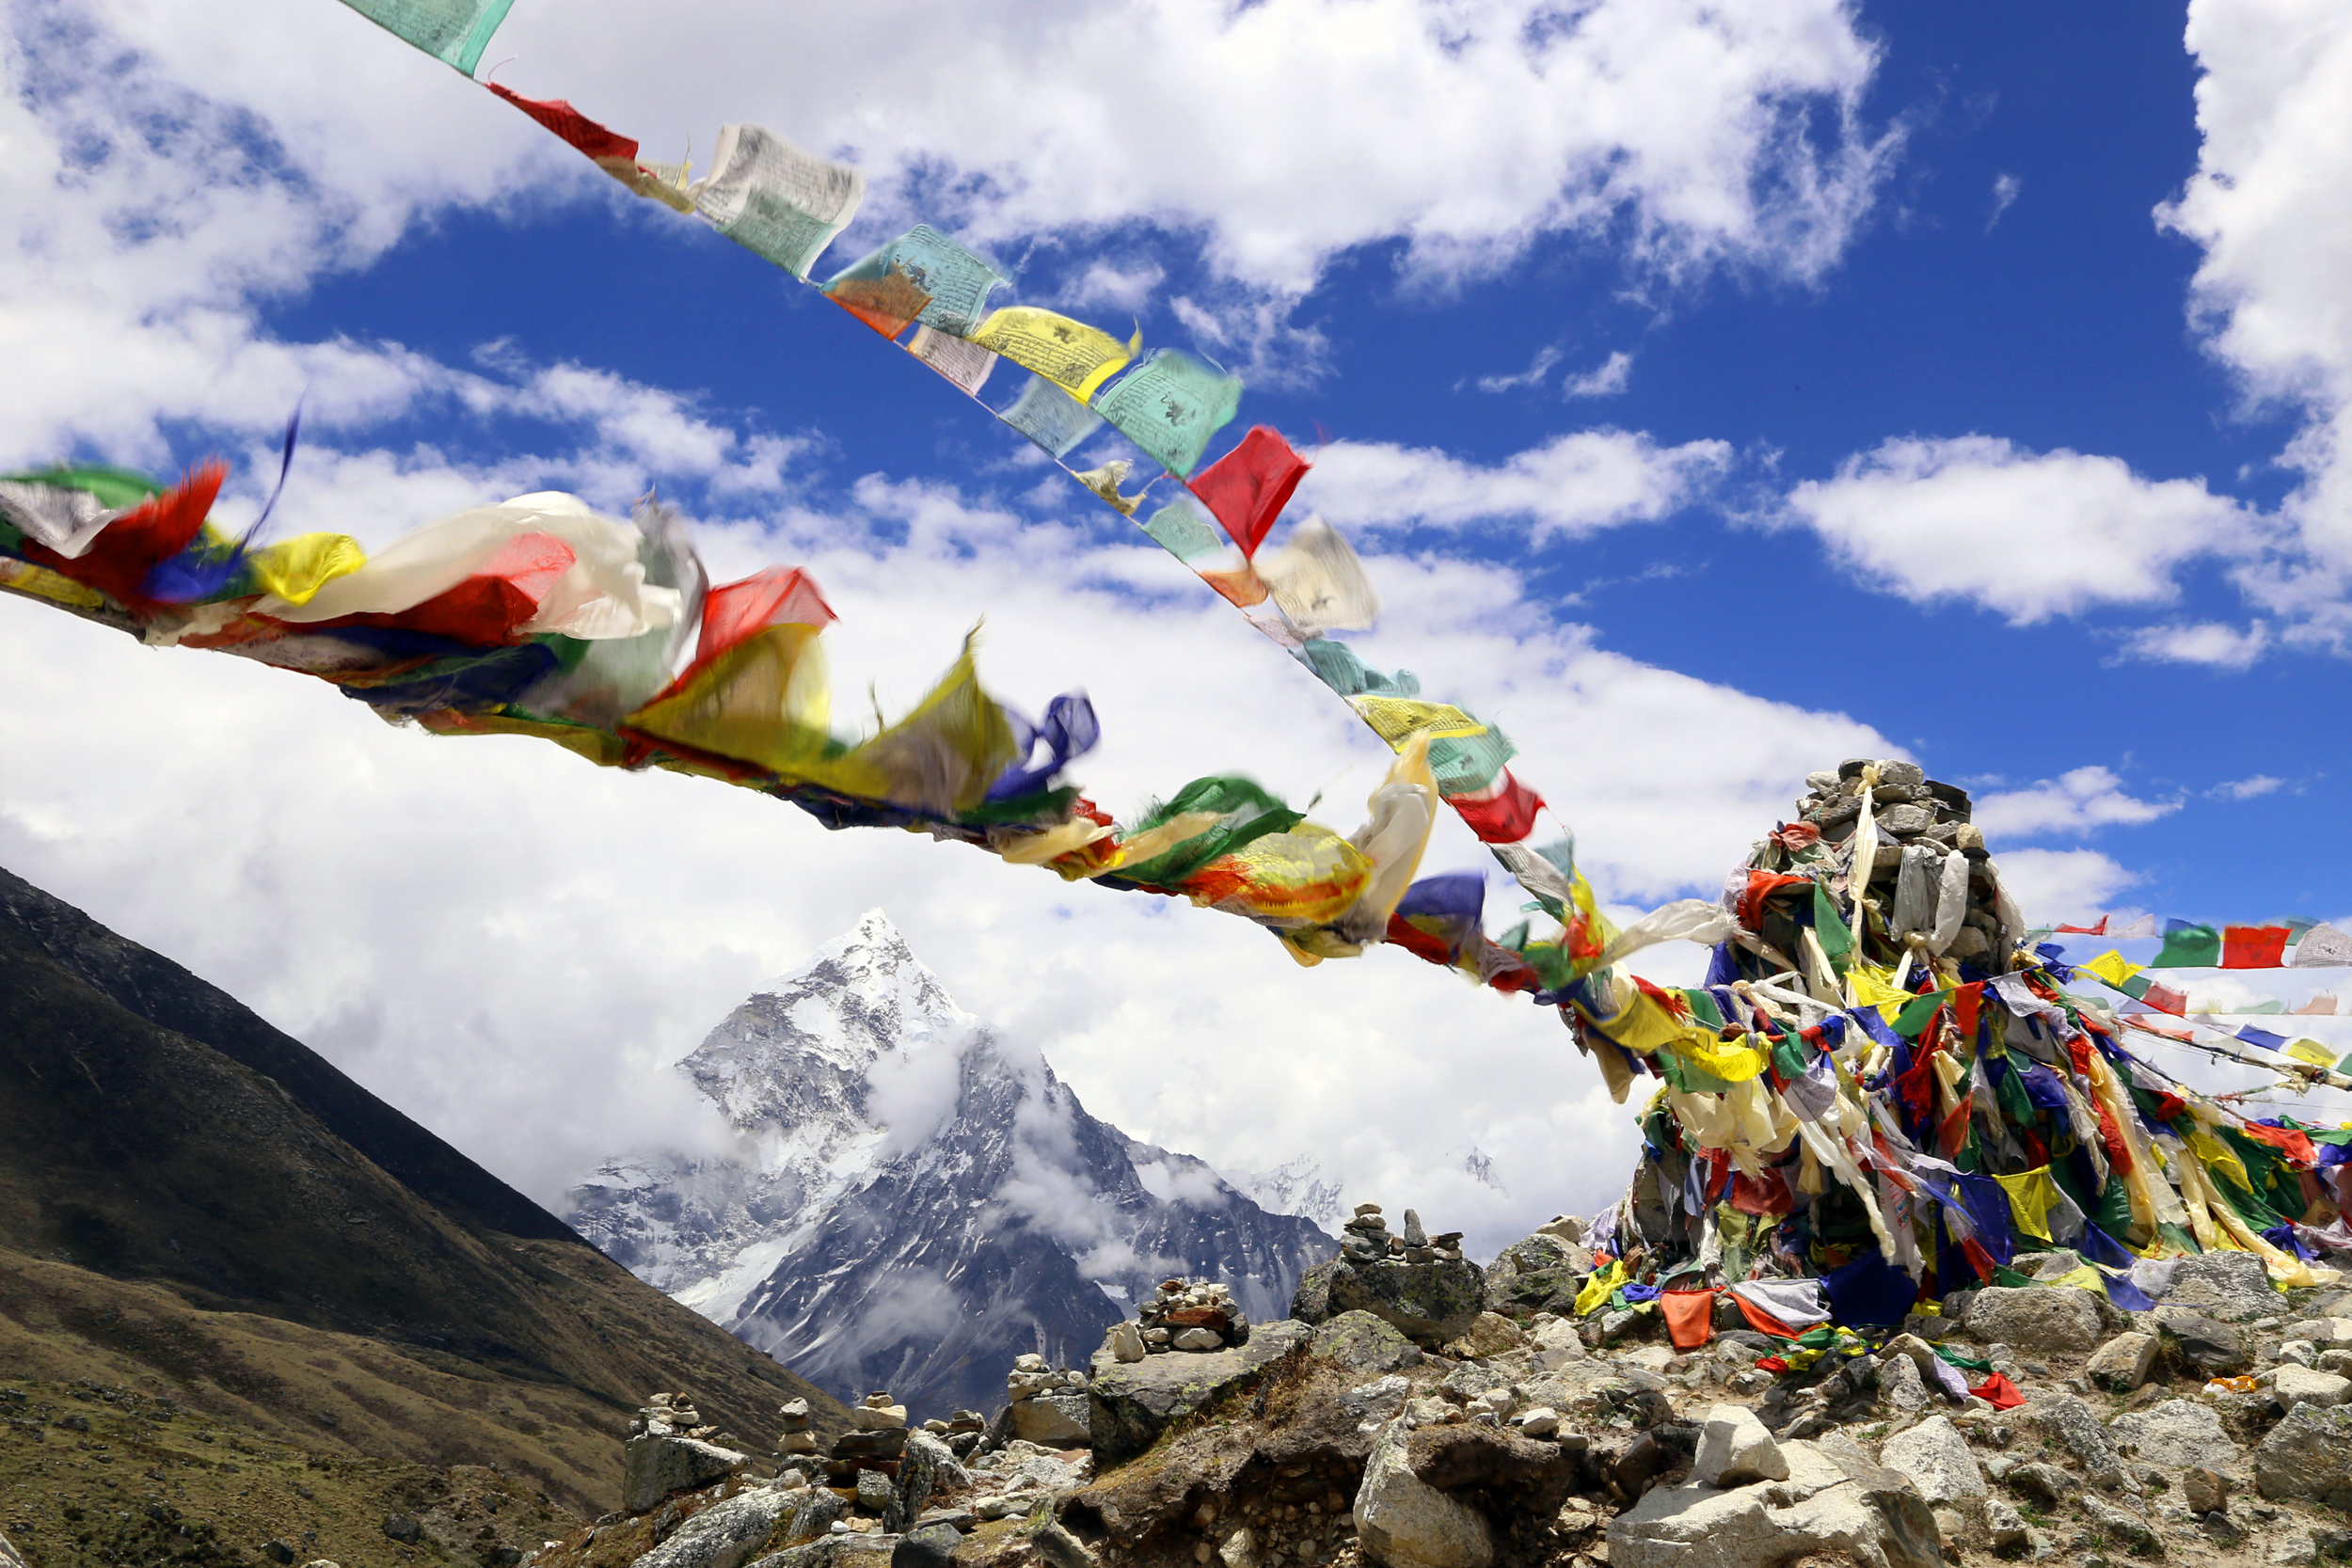 Backpacking through Nepal - the Himalayas to Everest Base Camp